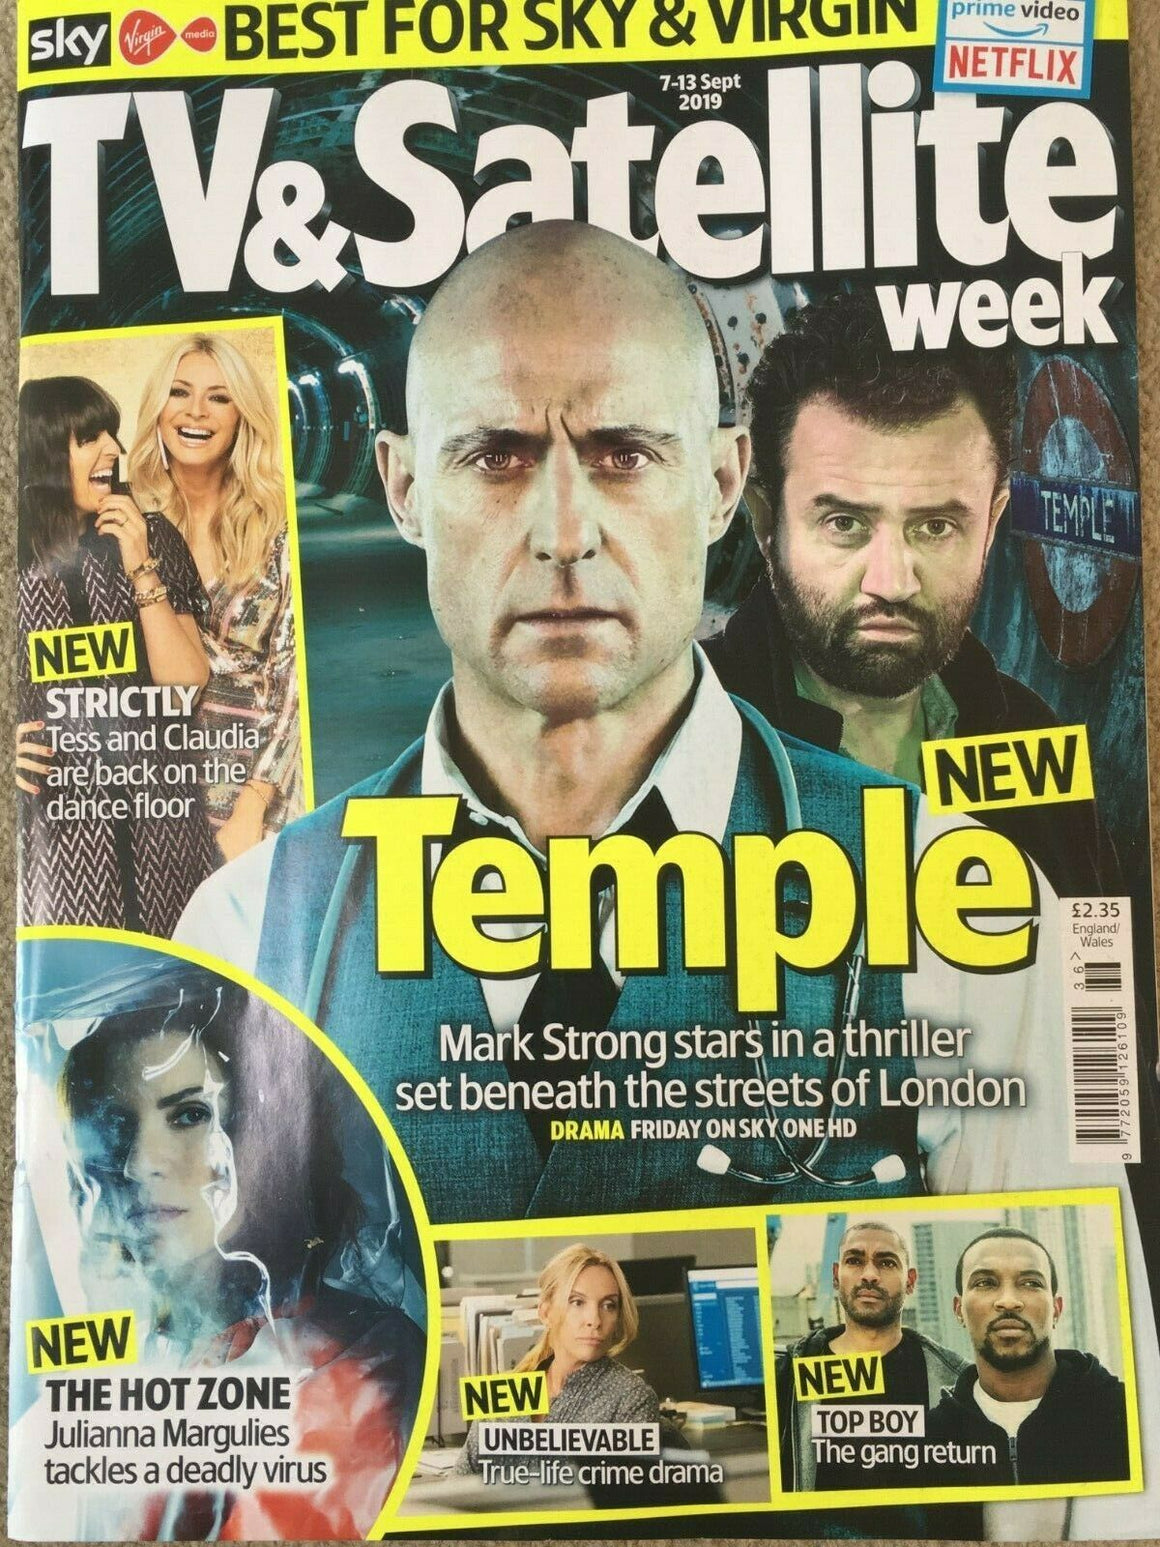 TV & Satellite Magazine 7 Sept 2019: Mark Strong Daniel Mays (Temple)